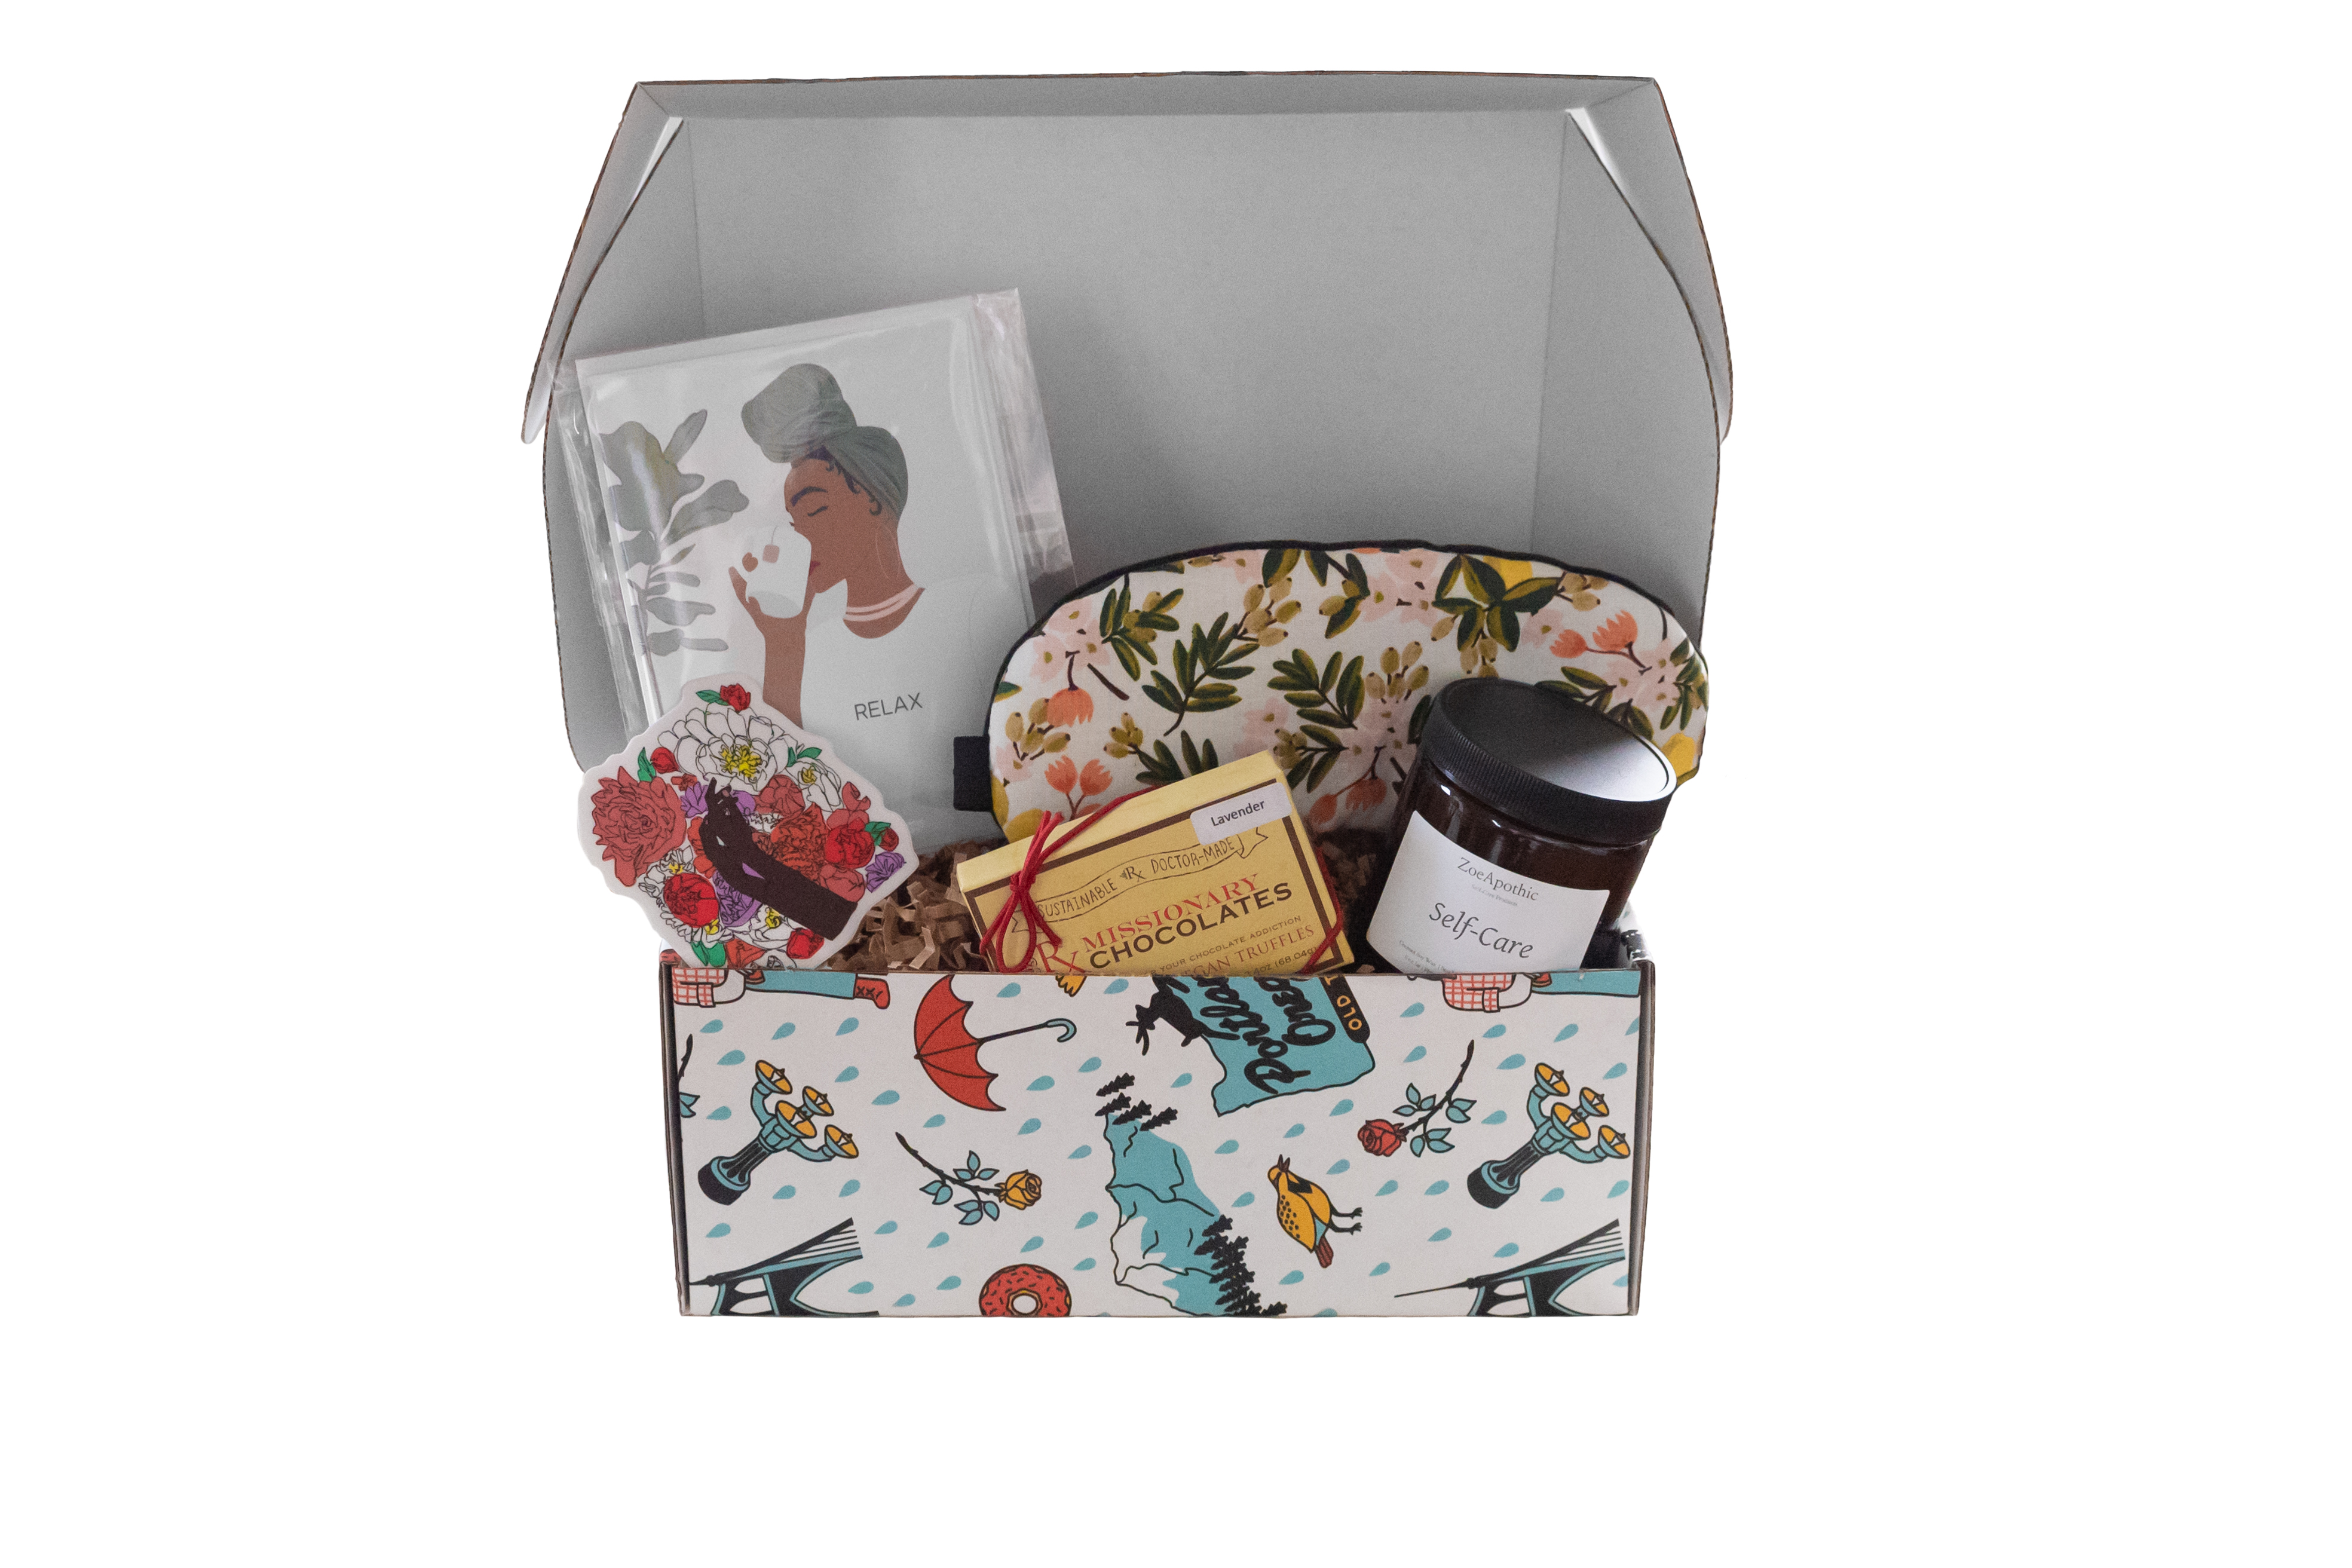 Self care bipoc women's month box. staged food photography